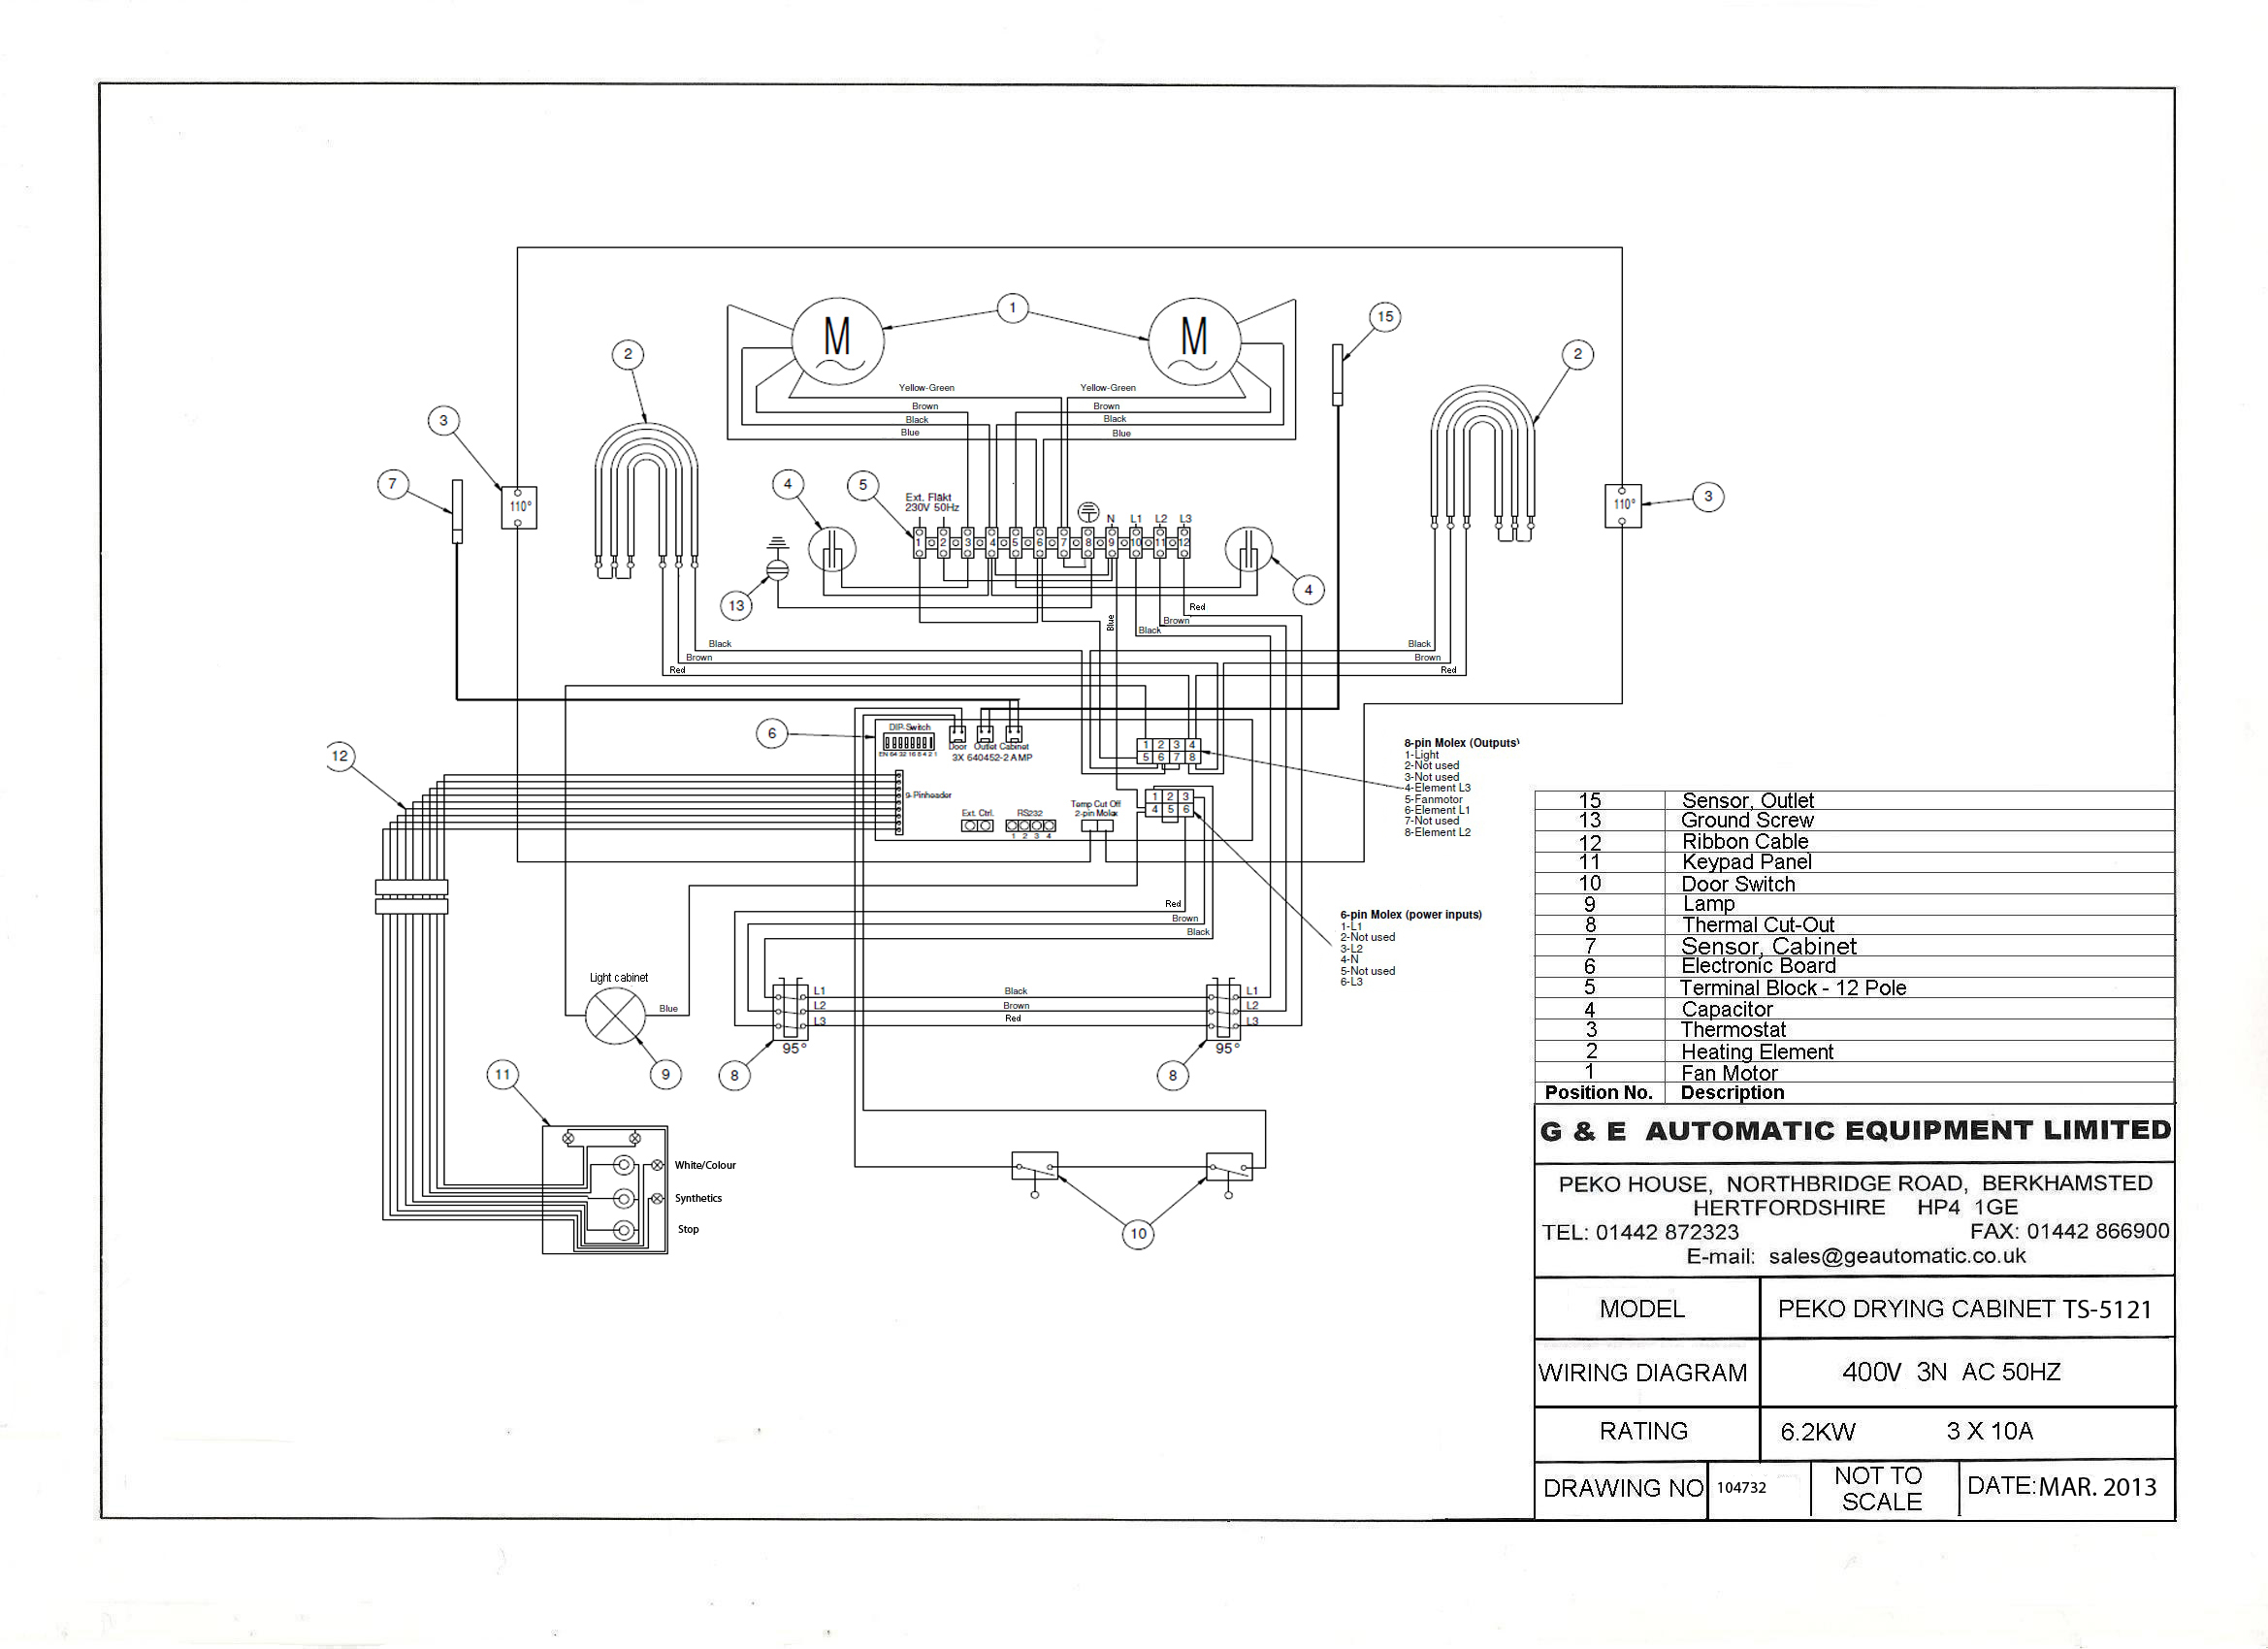 Wiring Diagrams Peko Drying Cabinets I Need A Diagram Ts 5121 400v